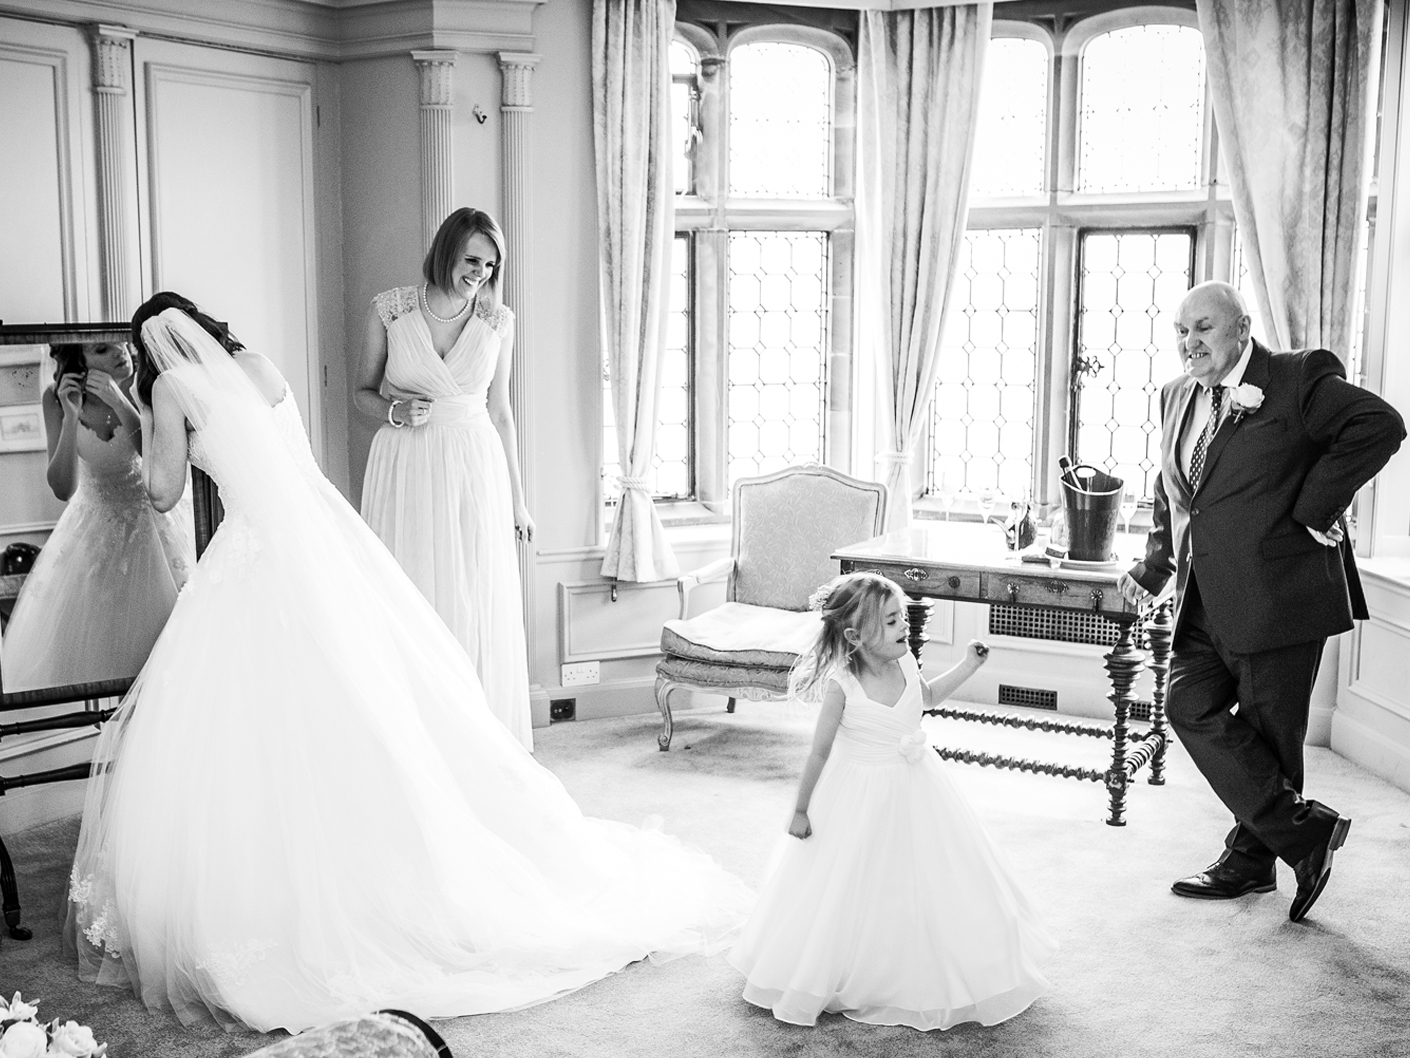 reportage-wedding-photography-at-thornton-manor-wirral